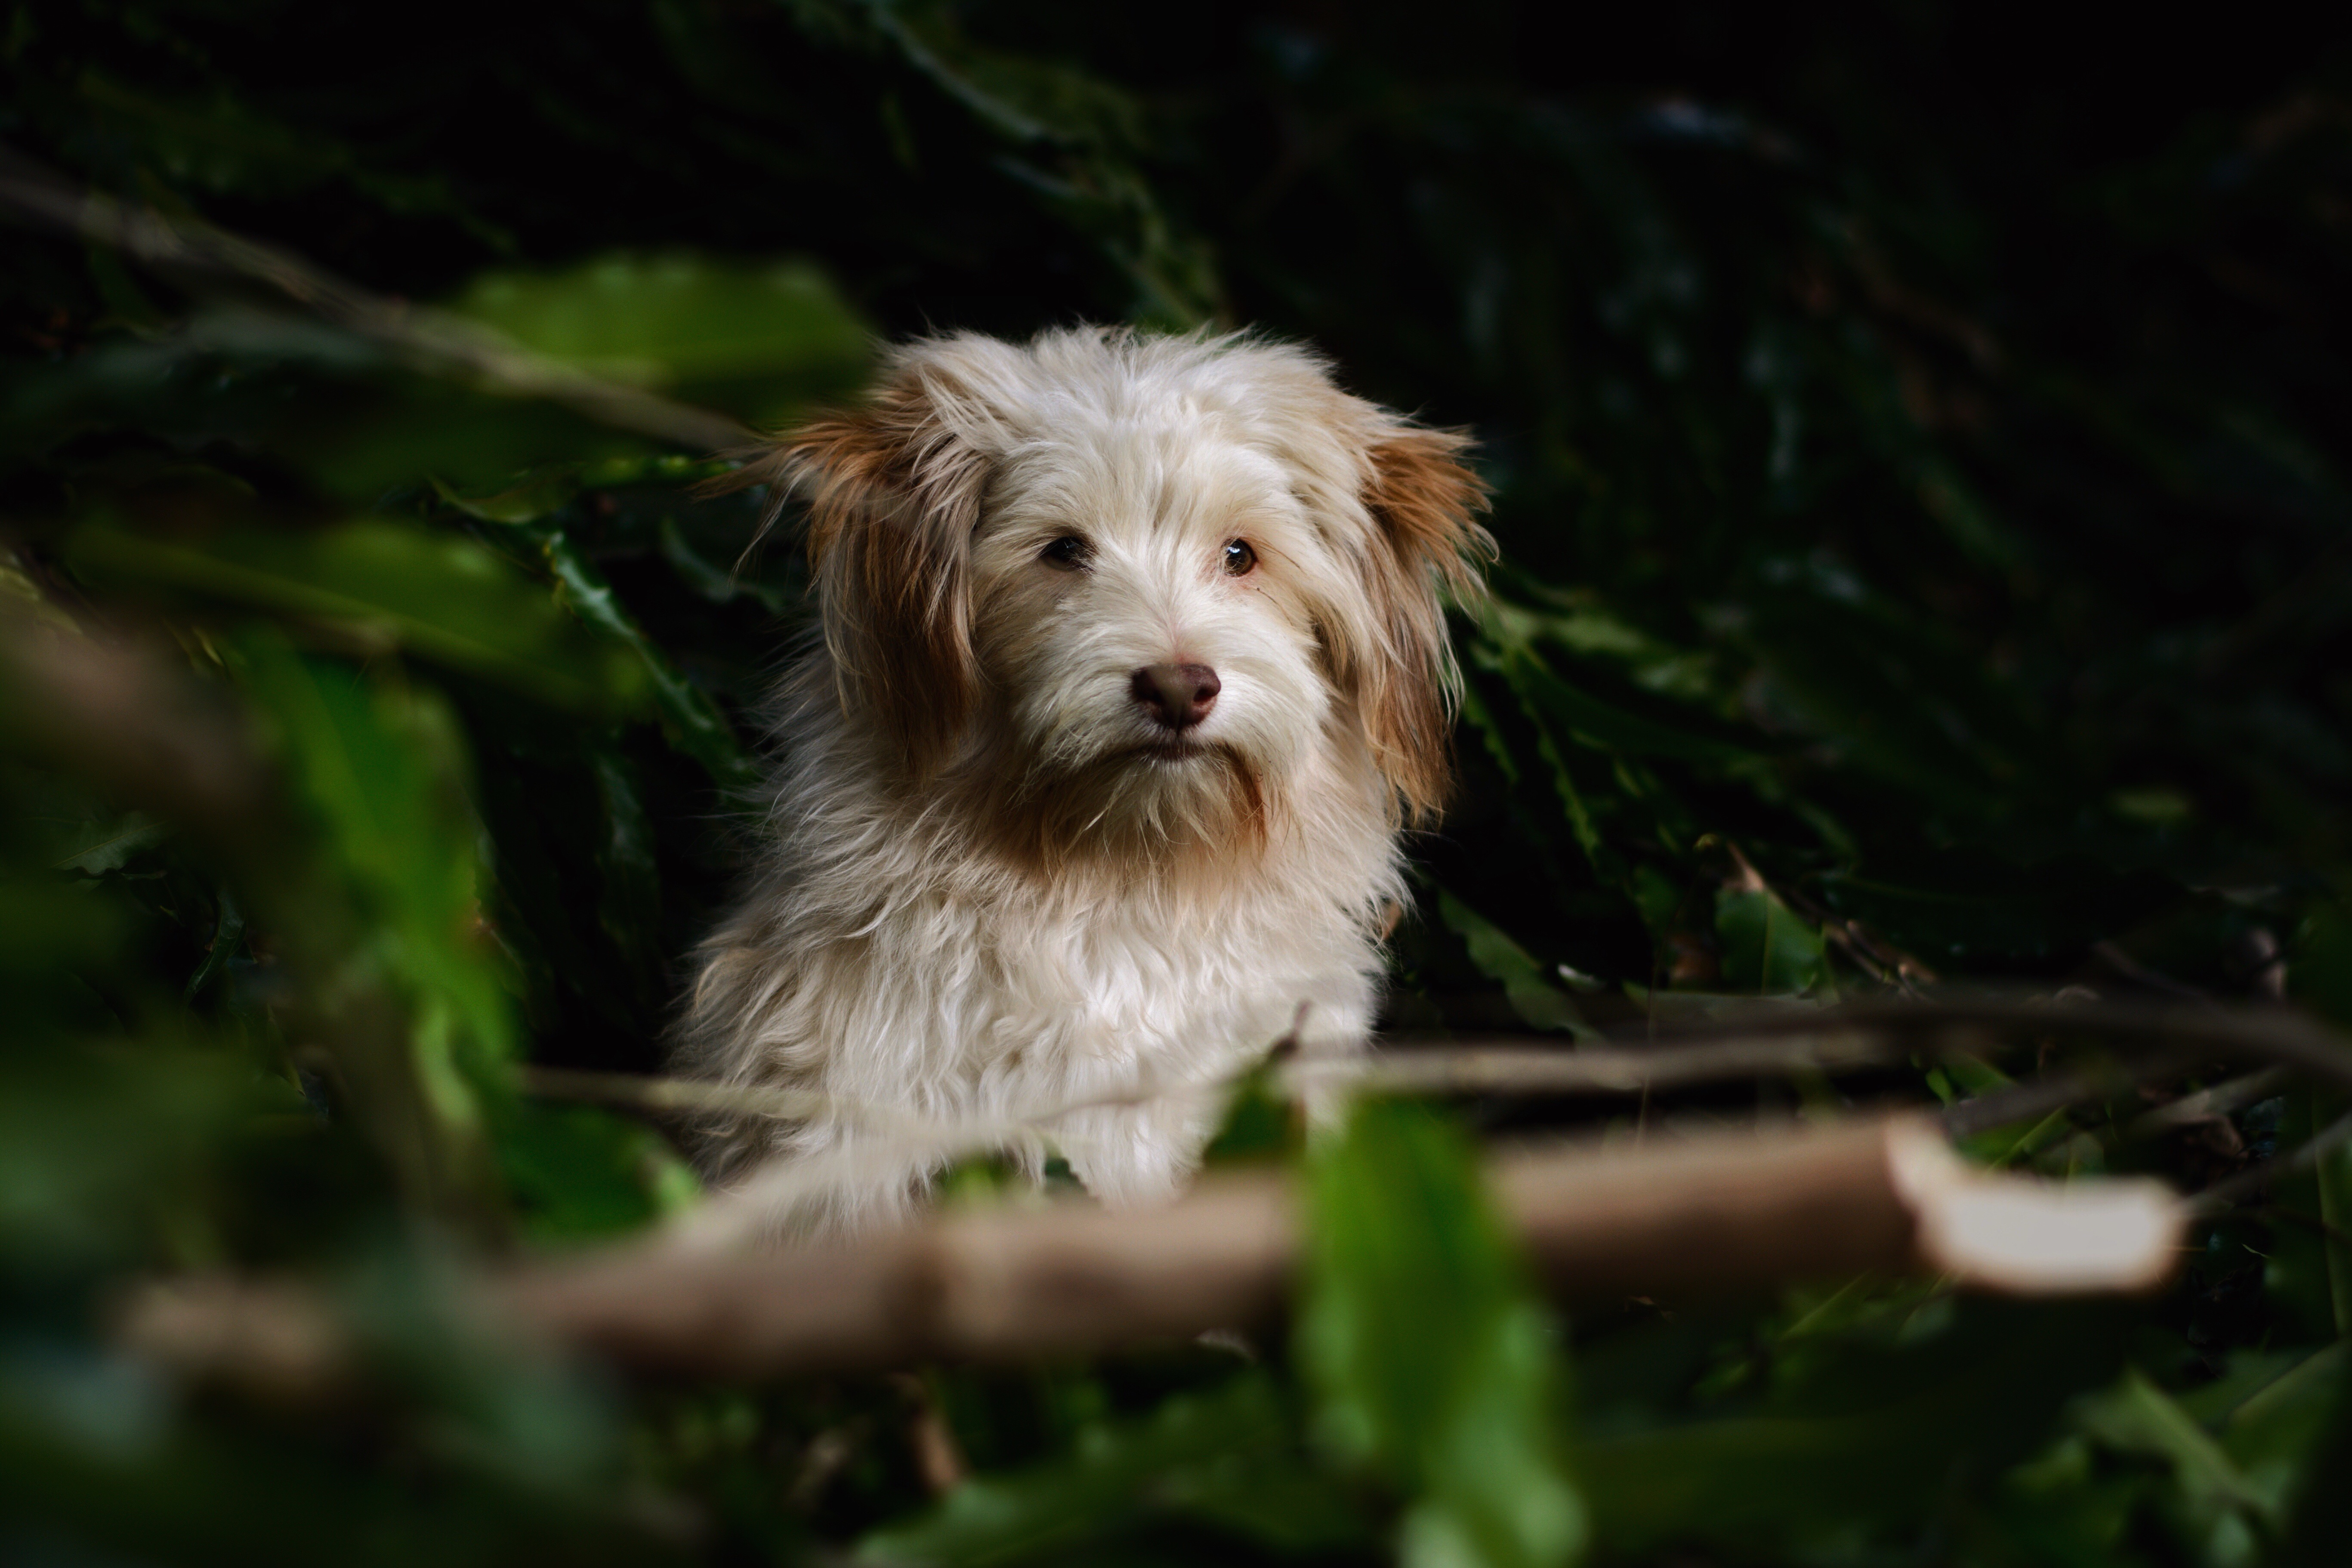 146830 download wallpaper Animals, Dog, Fluffy, Muzzle, Blur, Smooth screensavers and pictures for free